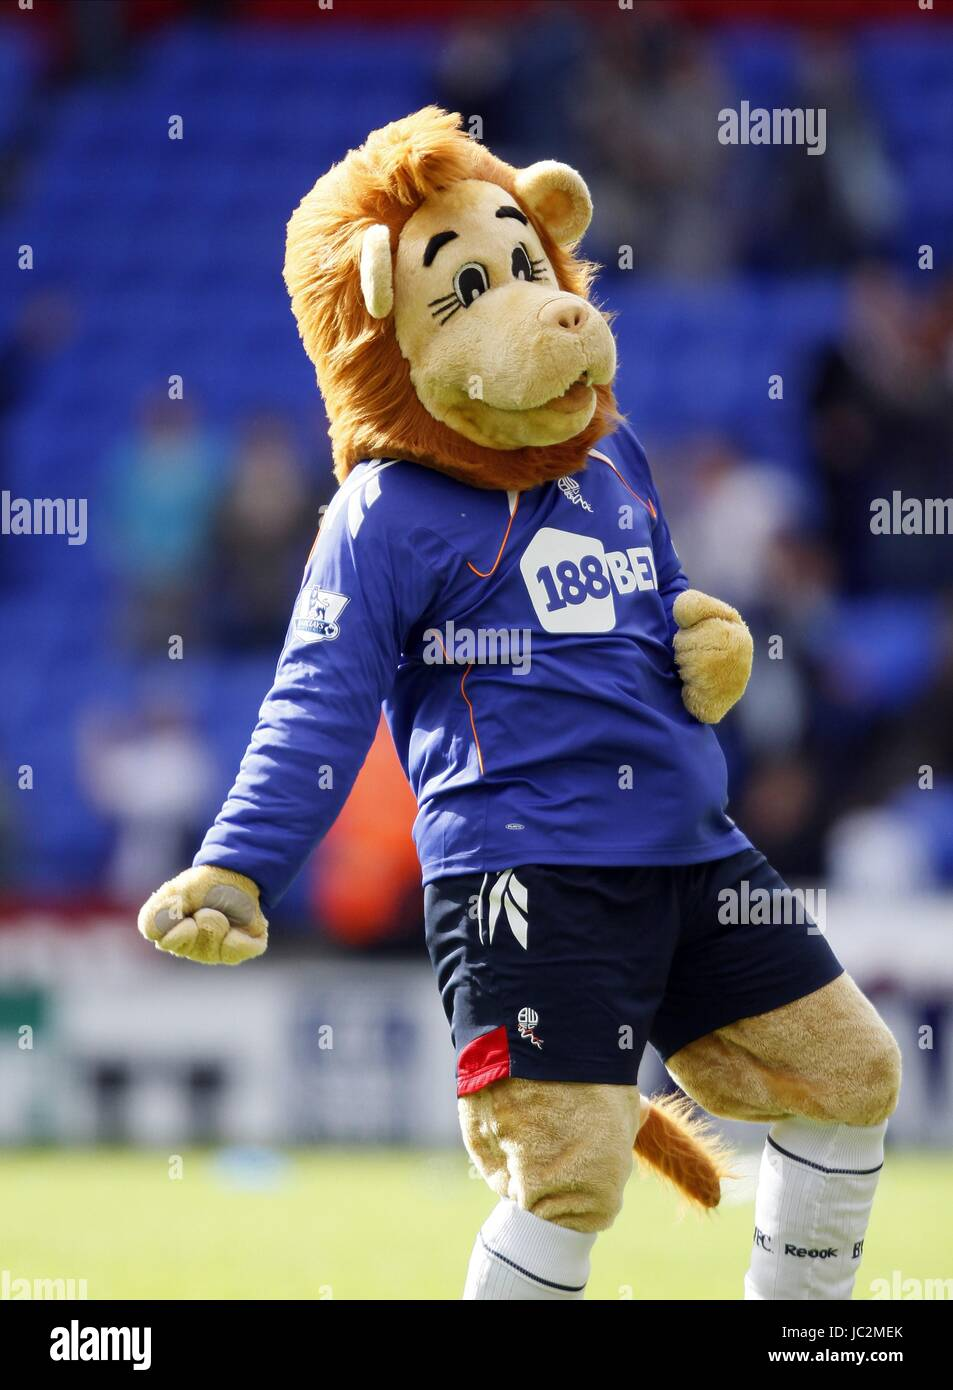 LOFTY THE LION BOLTON WANDERERS FC MASCOT BOLTON WANDERERS FC MASCOT REEBOK STADIUM BOLTON ENGLAND 29 August 2010 - Stock Image